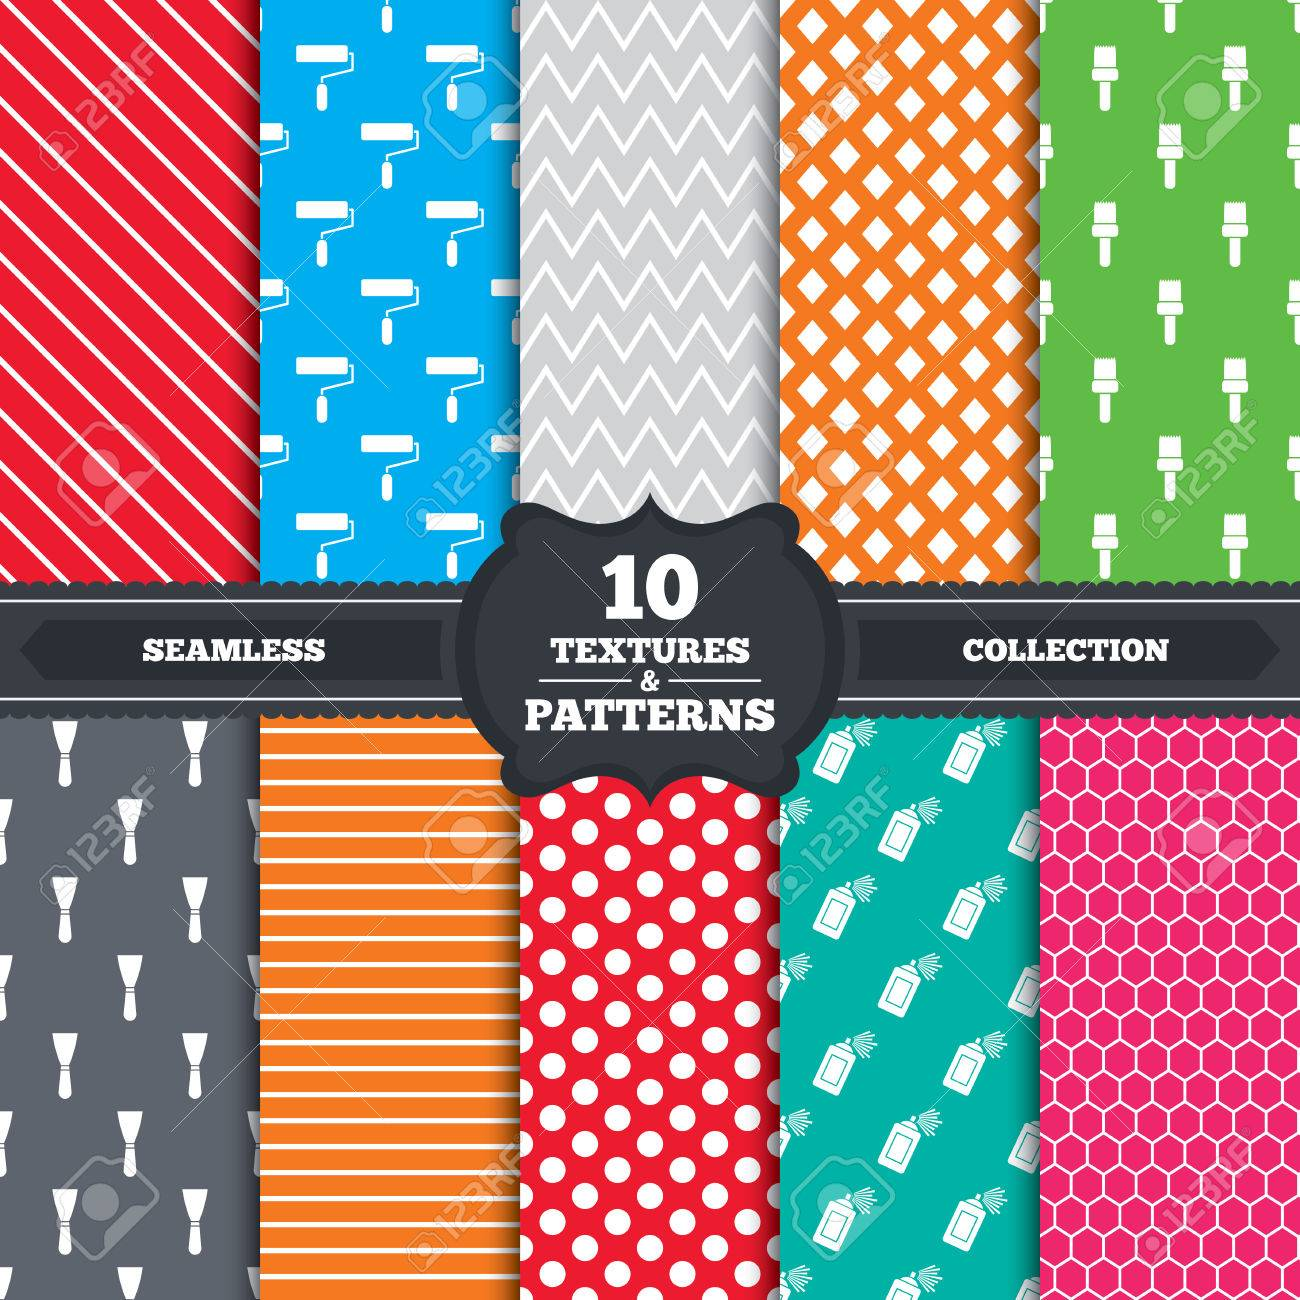 Seamless patterns and textures  Paint roller, brush icons  Spray